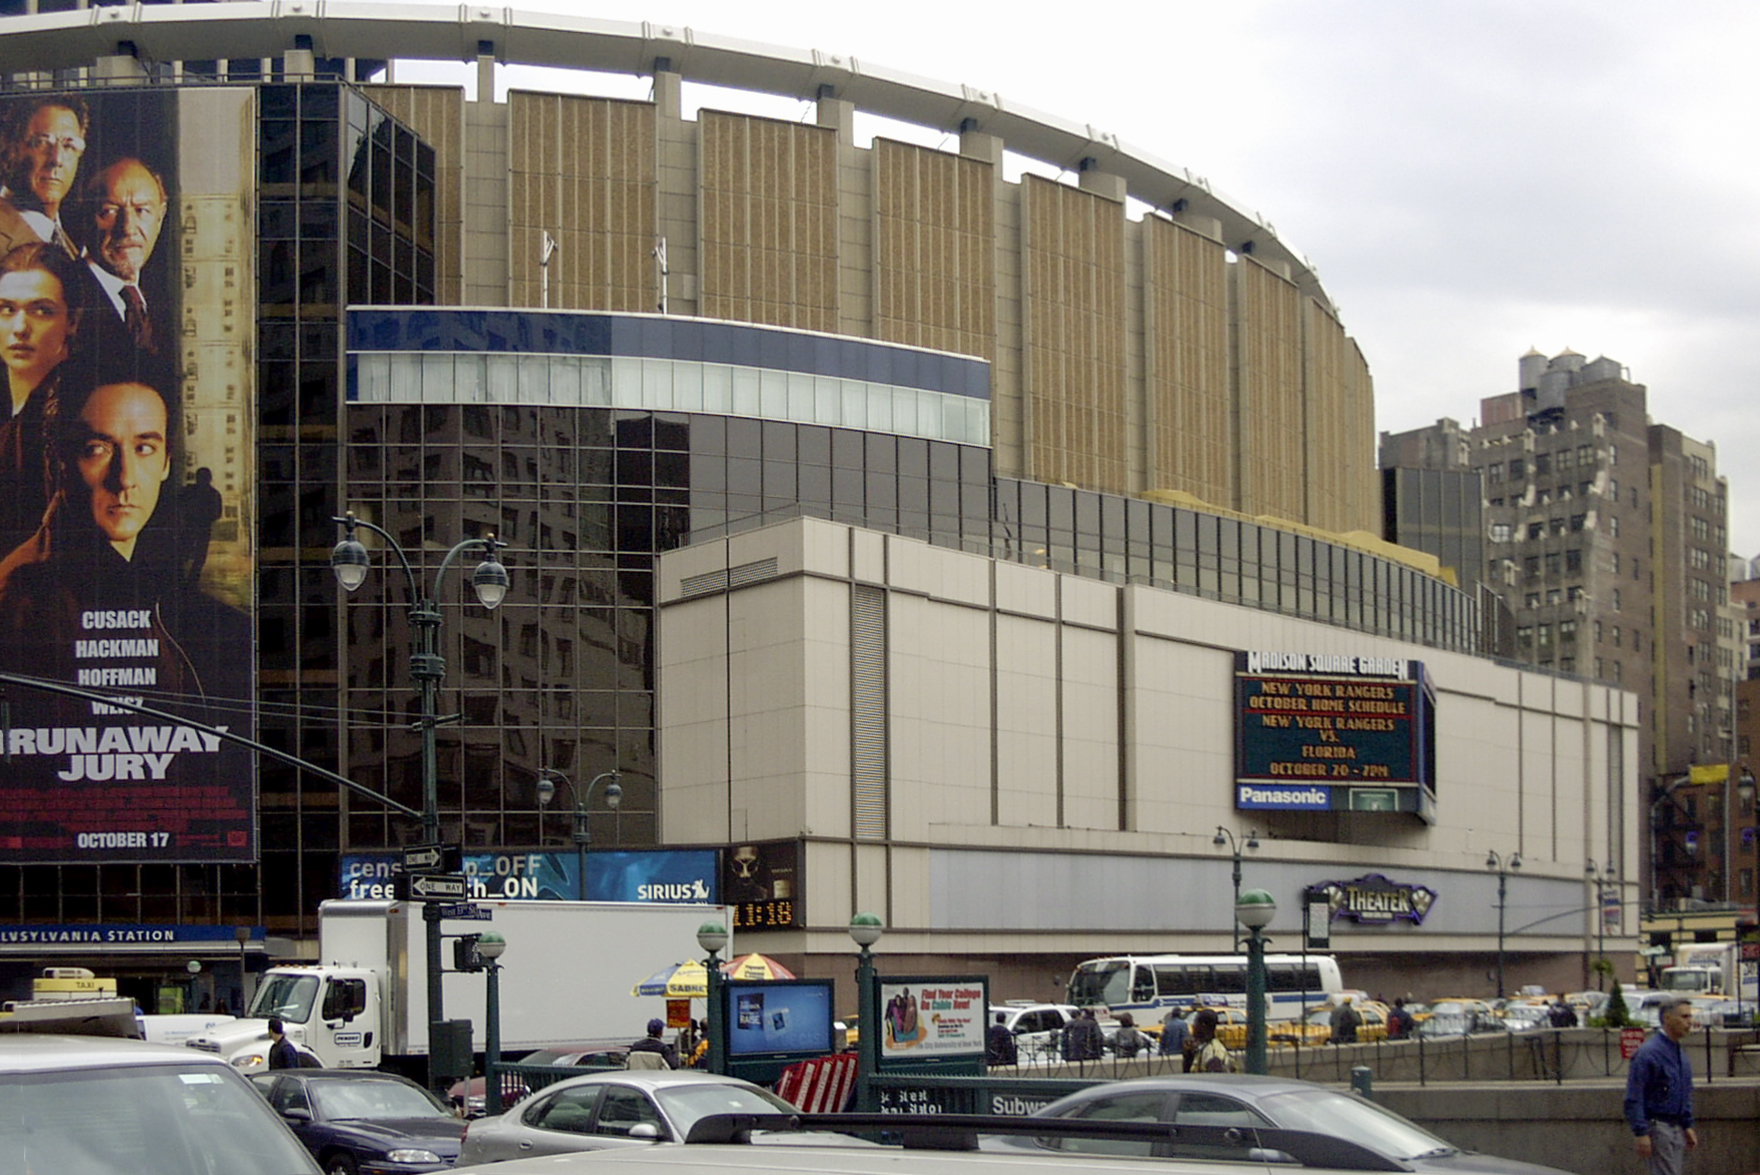 Madison Square Garden 1925 Wikipedia All Basketball Scores Info: madison square garden basketball